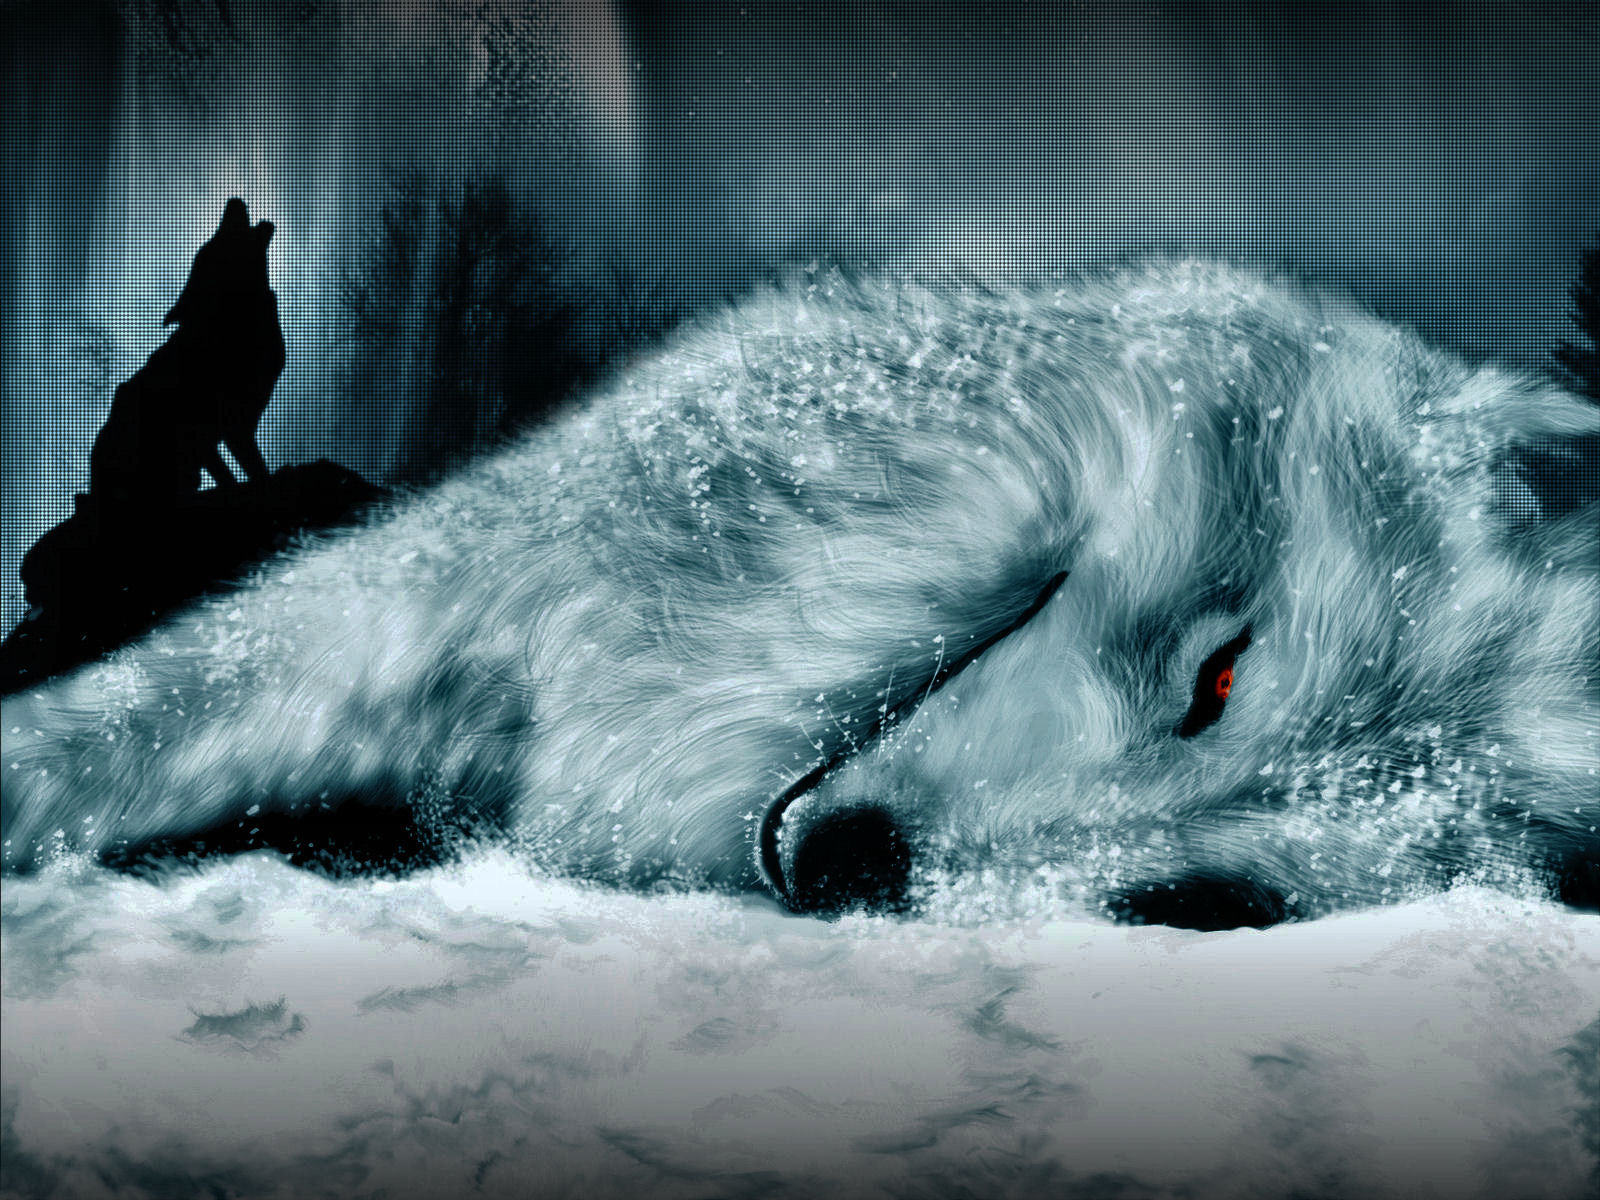 Wolf 39 s rain wallpaper and background image 1600x1200 - Anime wolf wallpaper ...